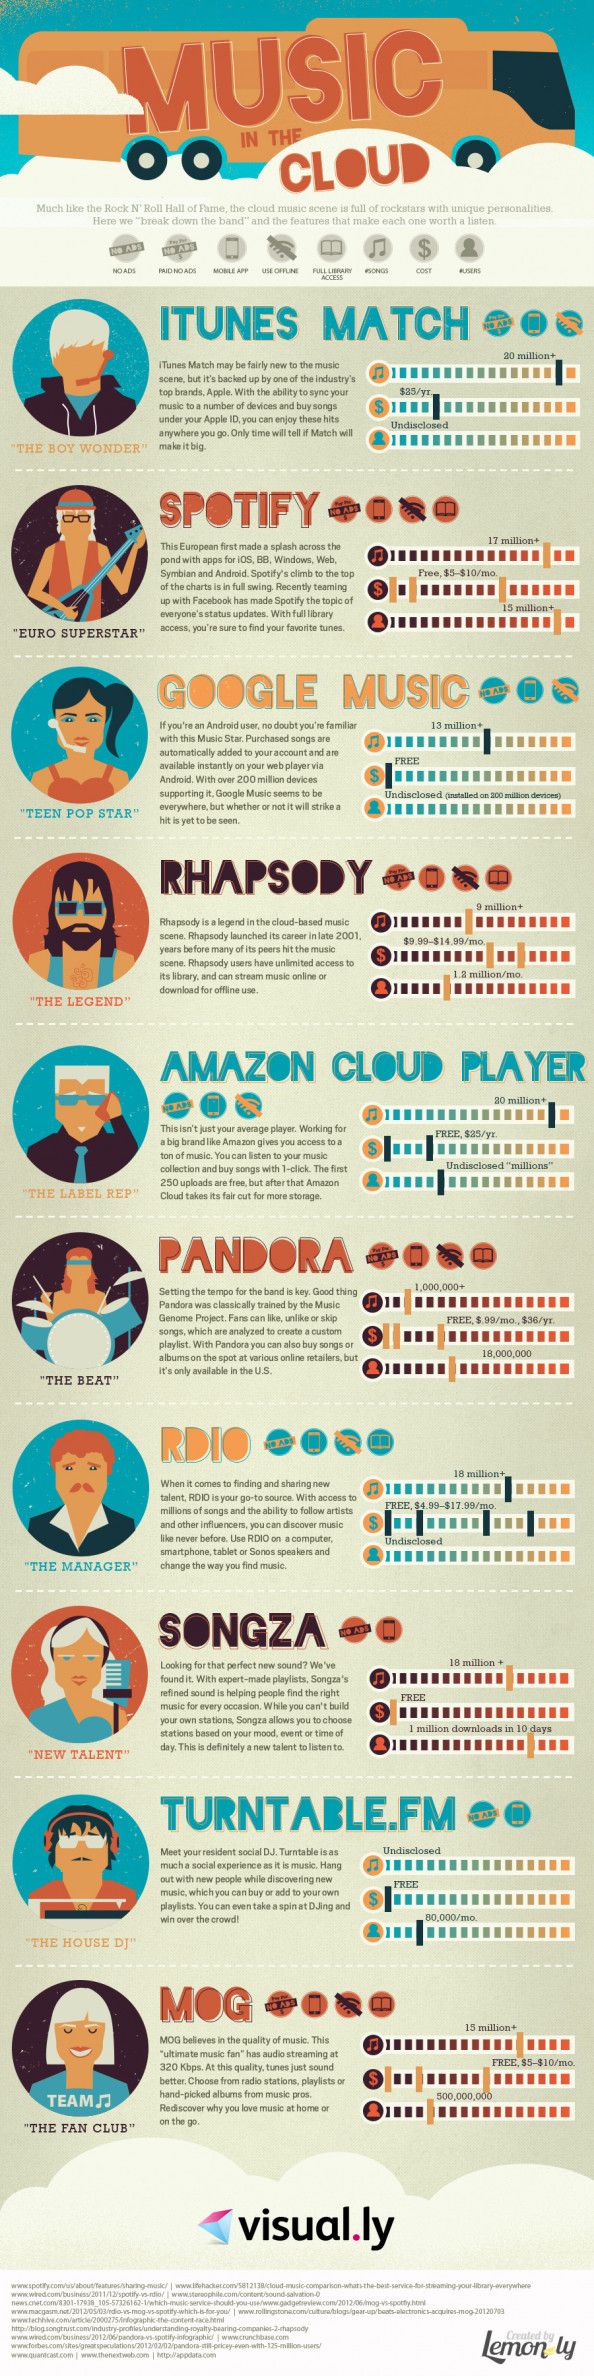 Infographic: Top 10 Cloud Music Stores: Music in the Cloud